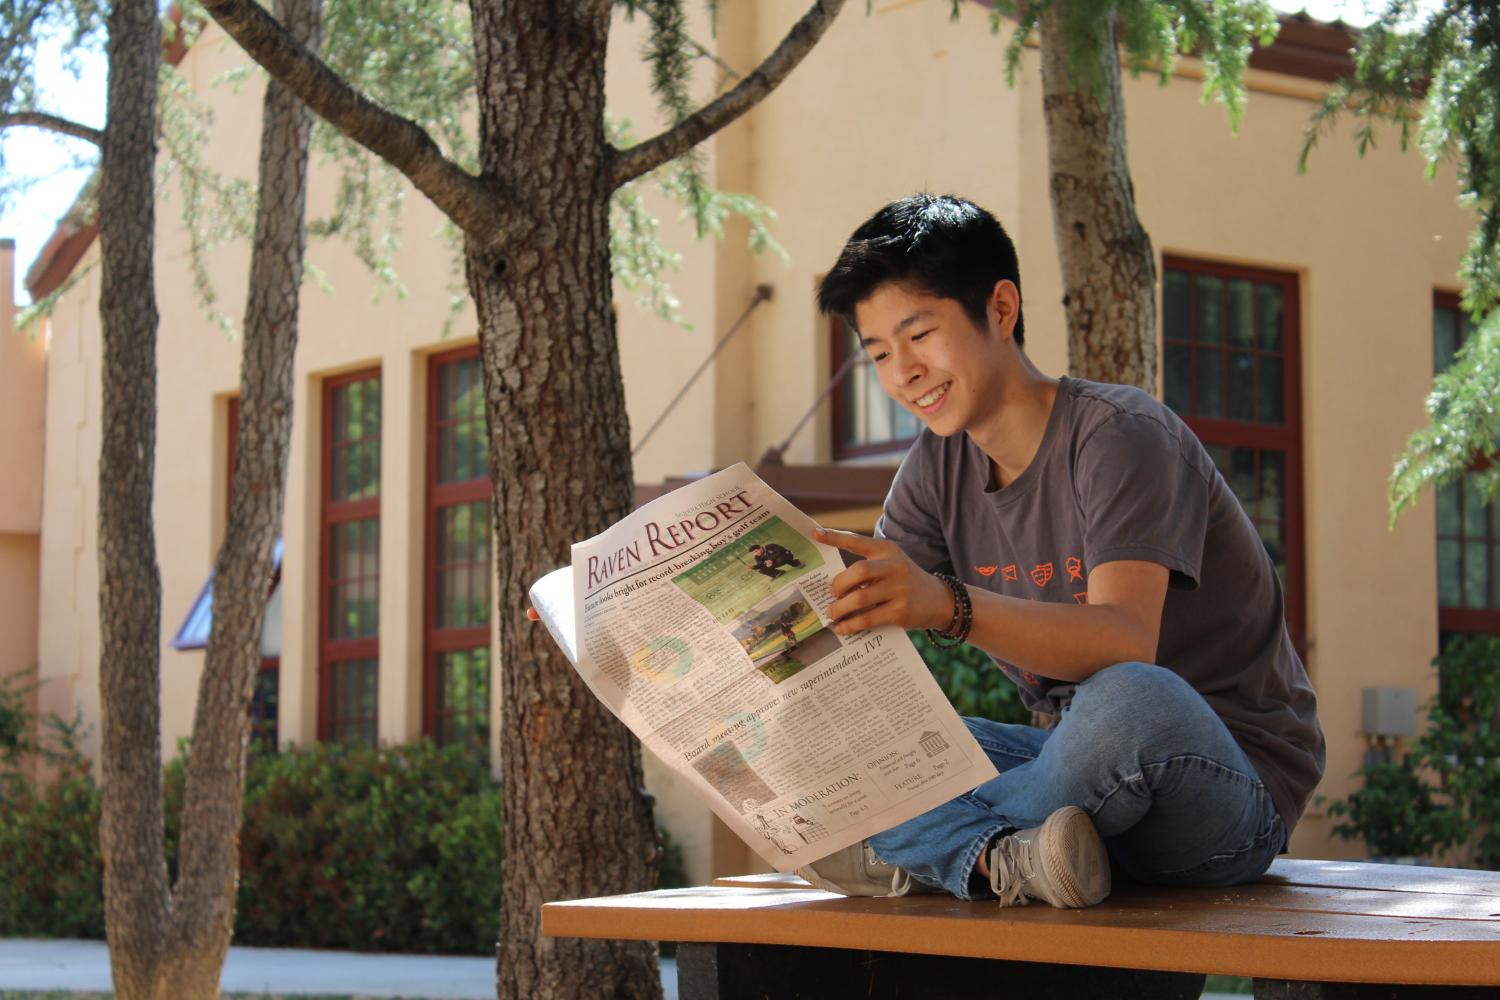 Xavier Boluna, Editor-in-Chief, reads the Raven Report at Sequoia